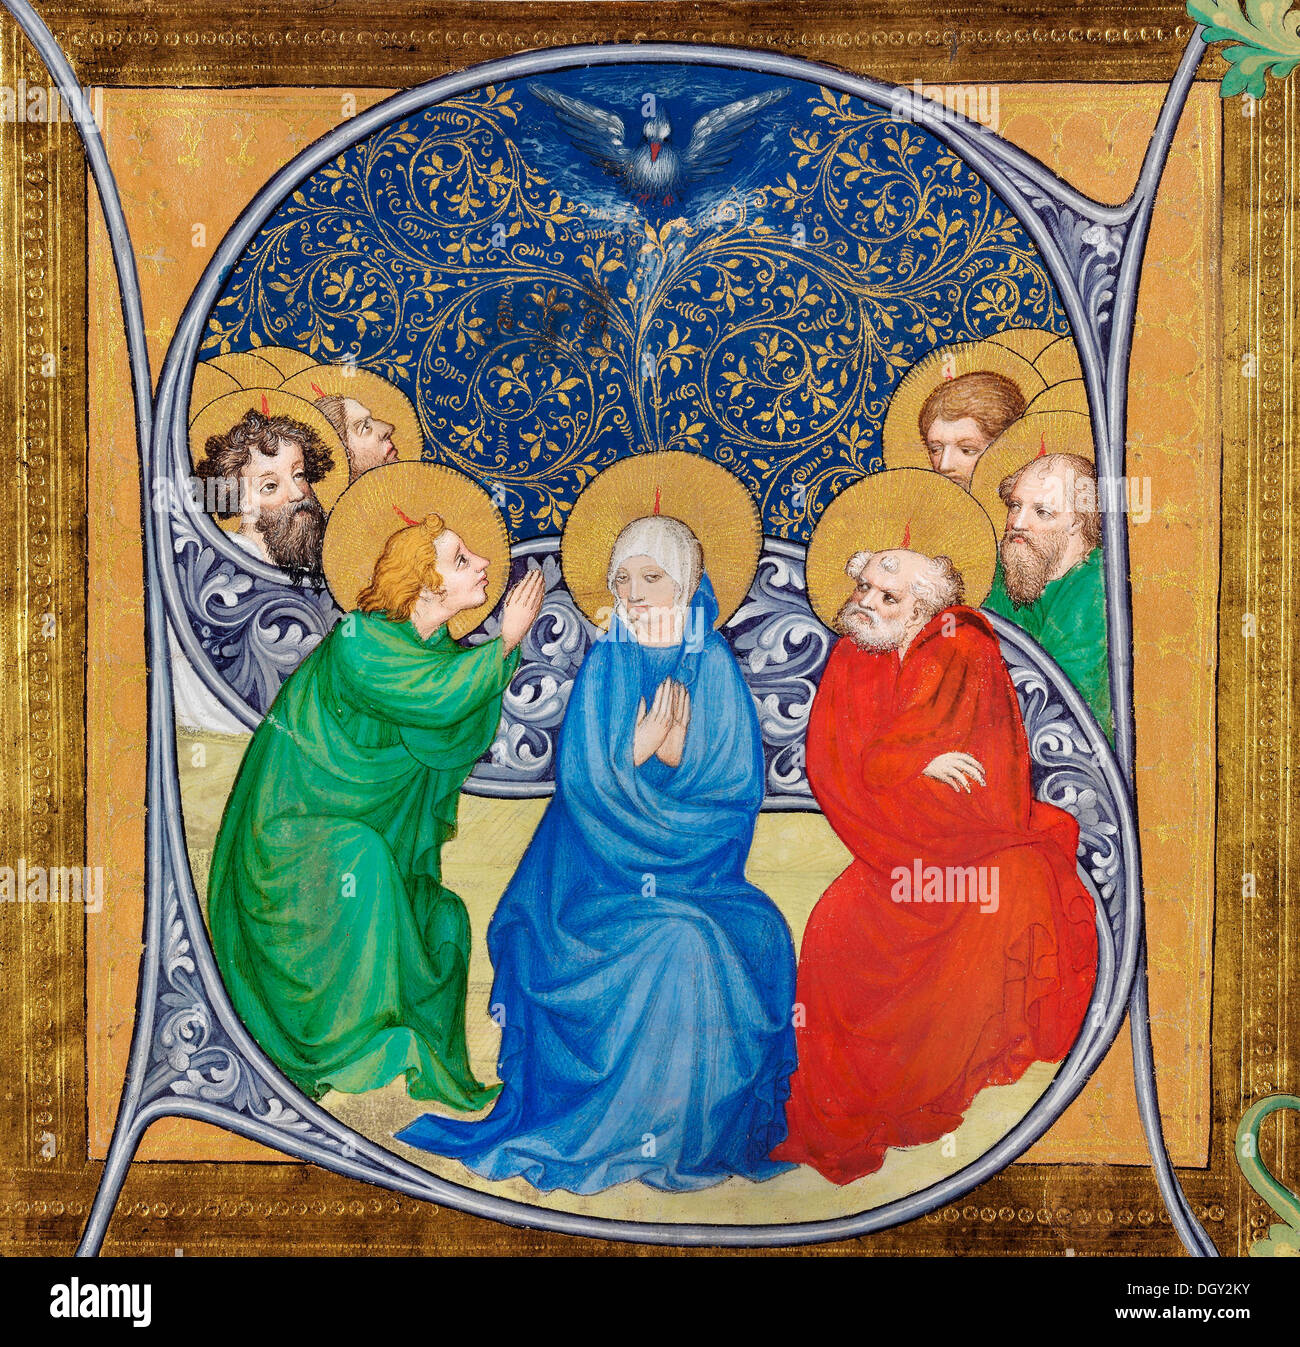 Bohemian Master, The Pentecost. 1413-1415 Tempera and gold on parchment. Museum of Fine Arts, Budapest. - Stock Image